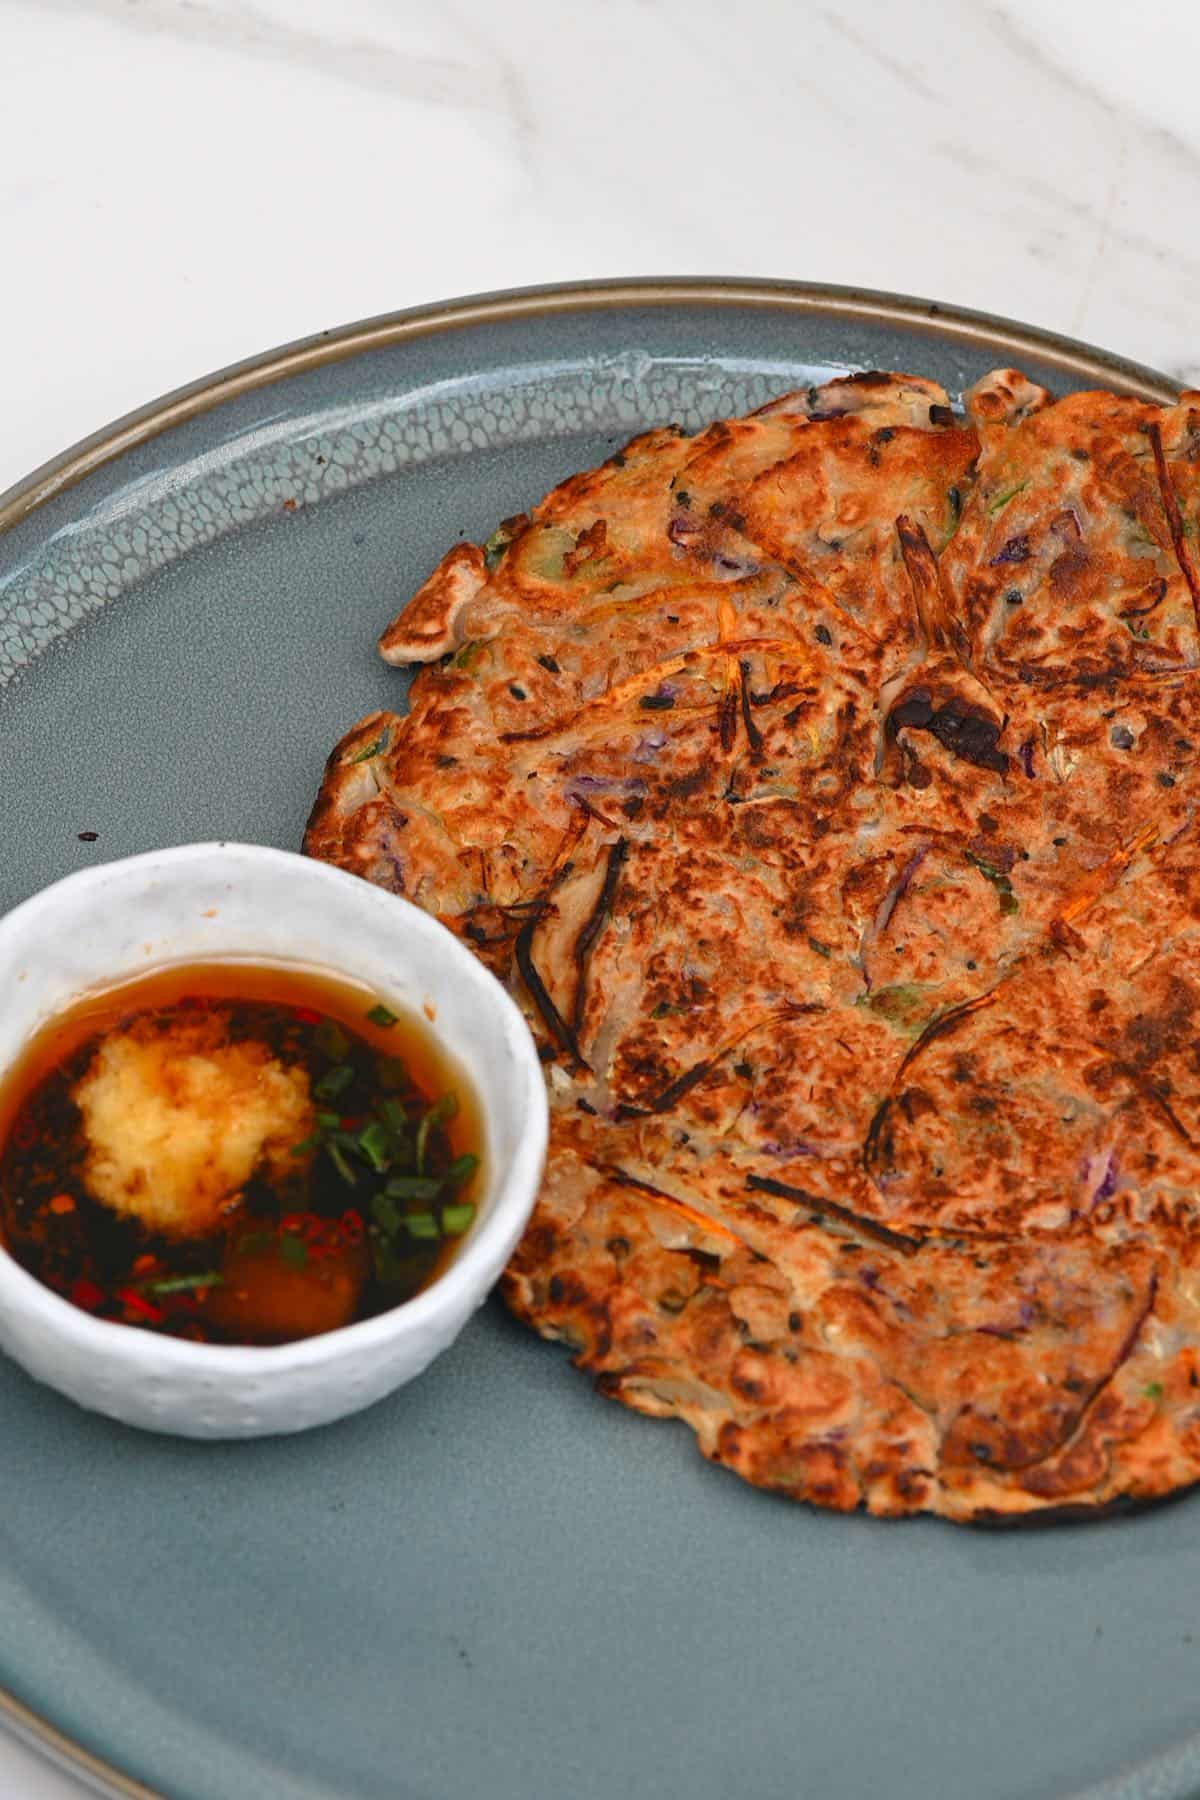 Savory pancake on a plate and a bowl of sauce